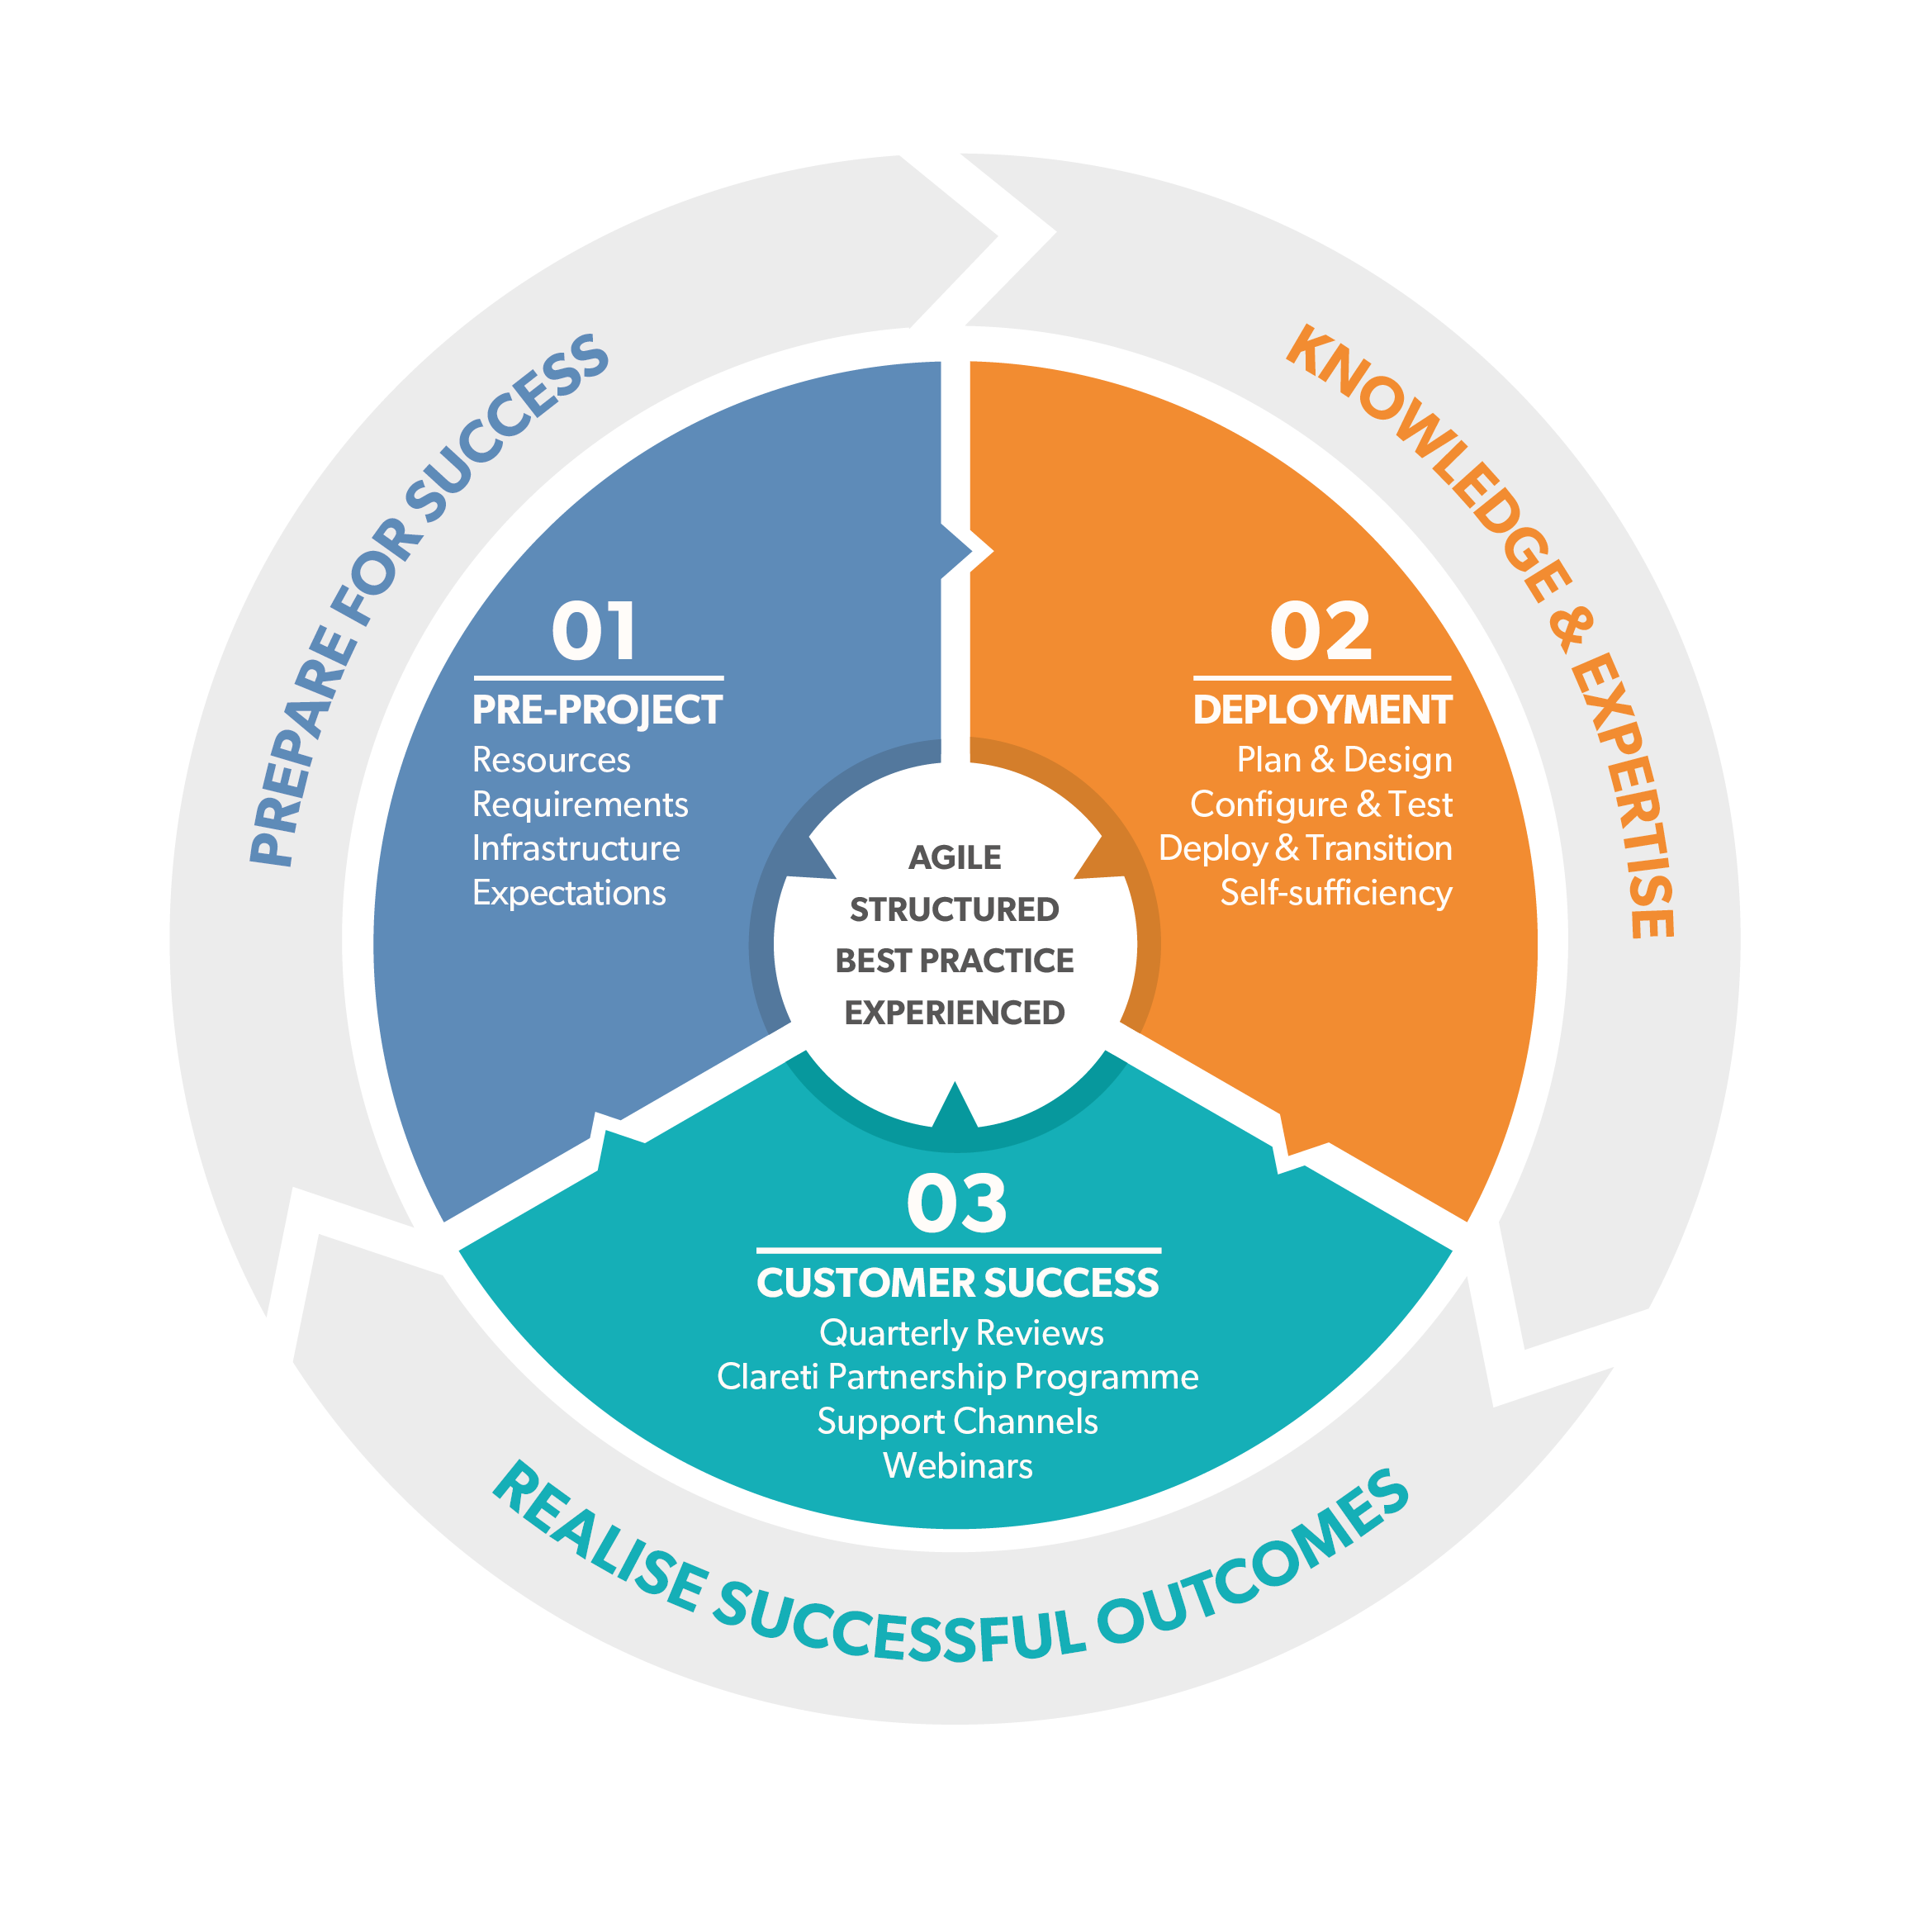 ps_implementation_methodology_infographic.png